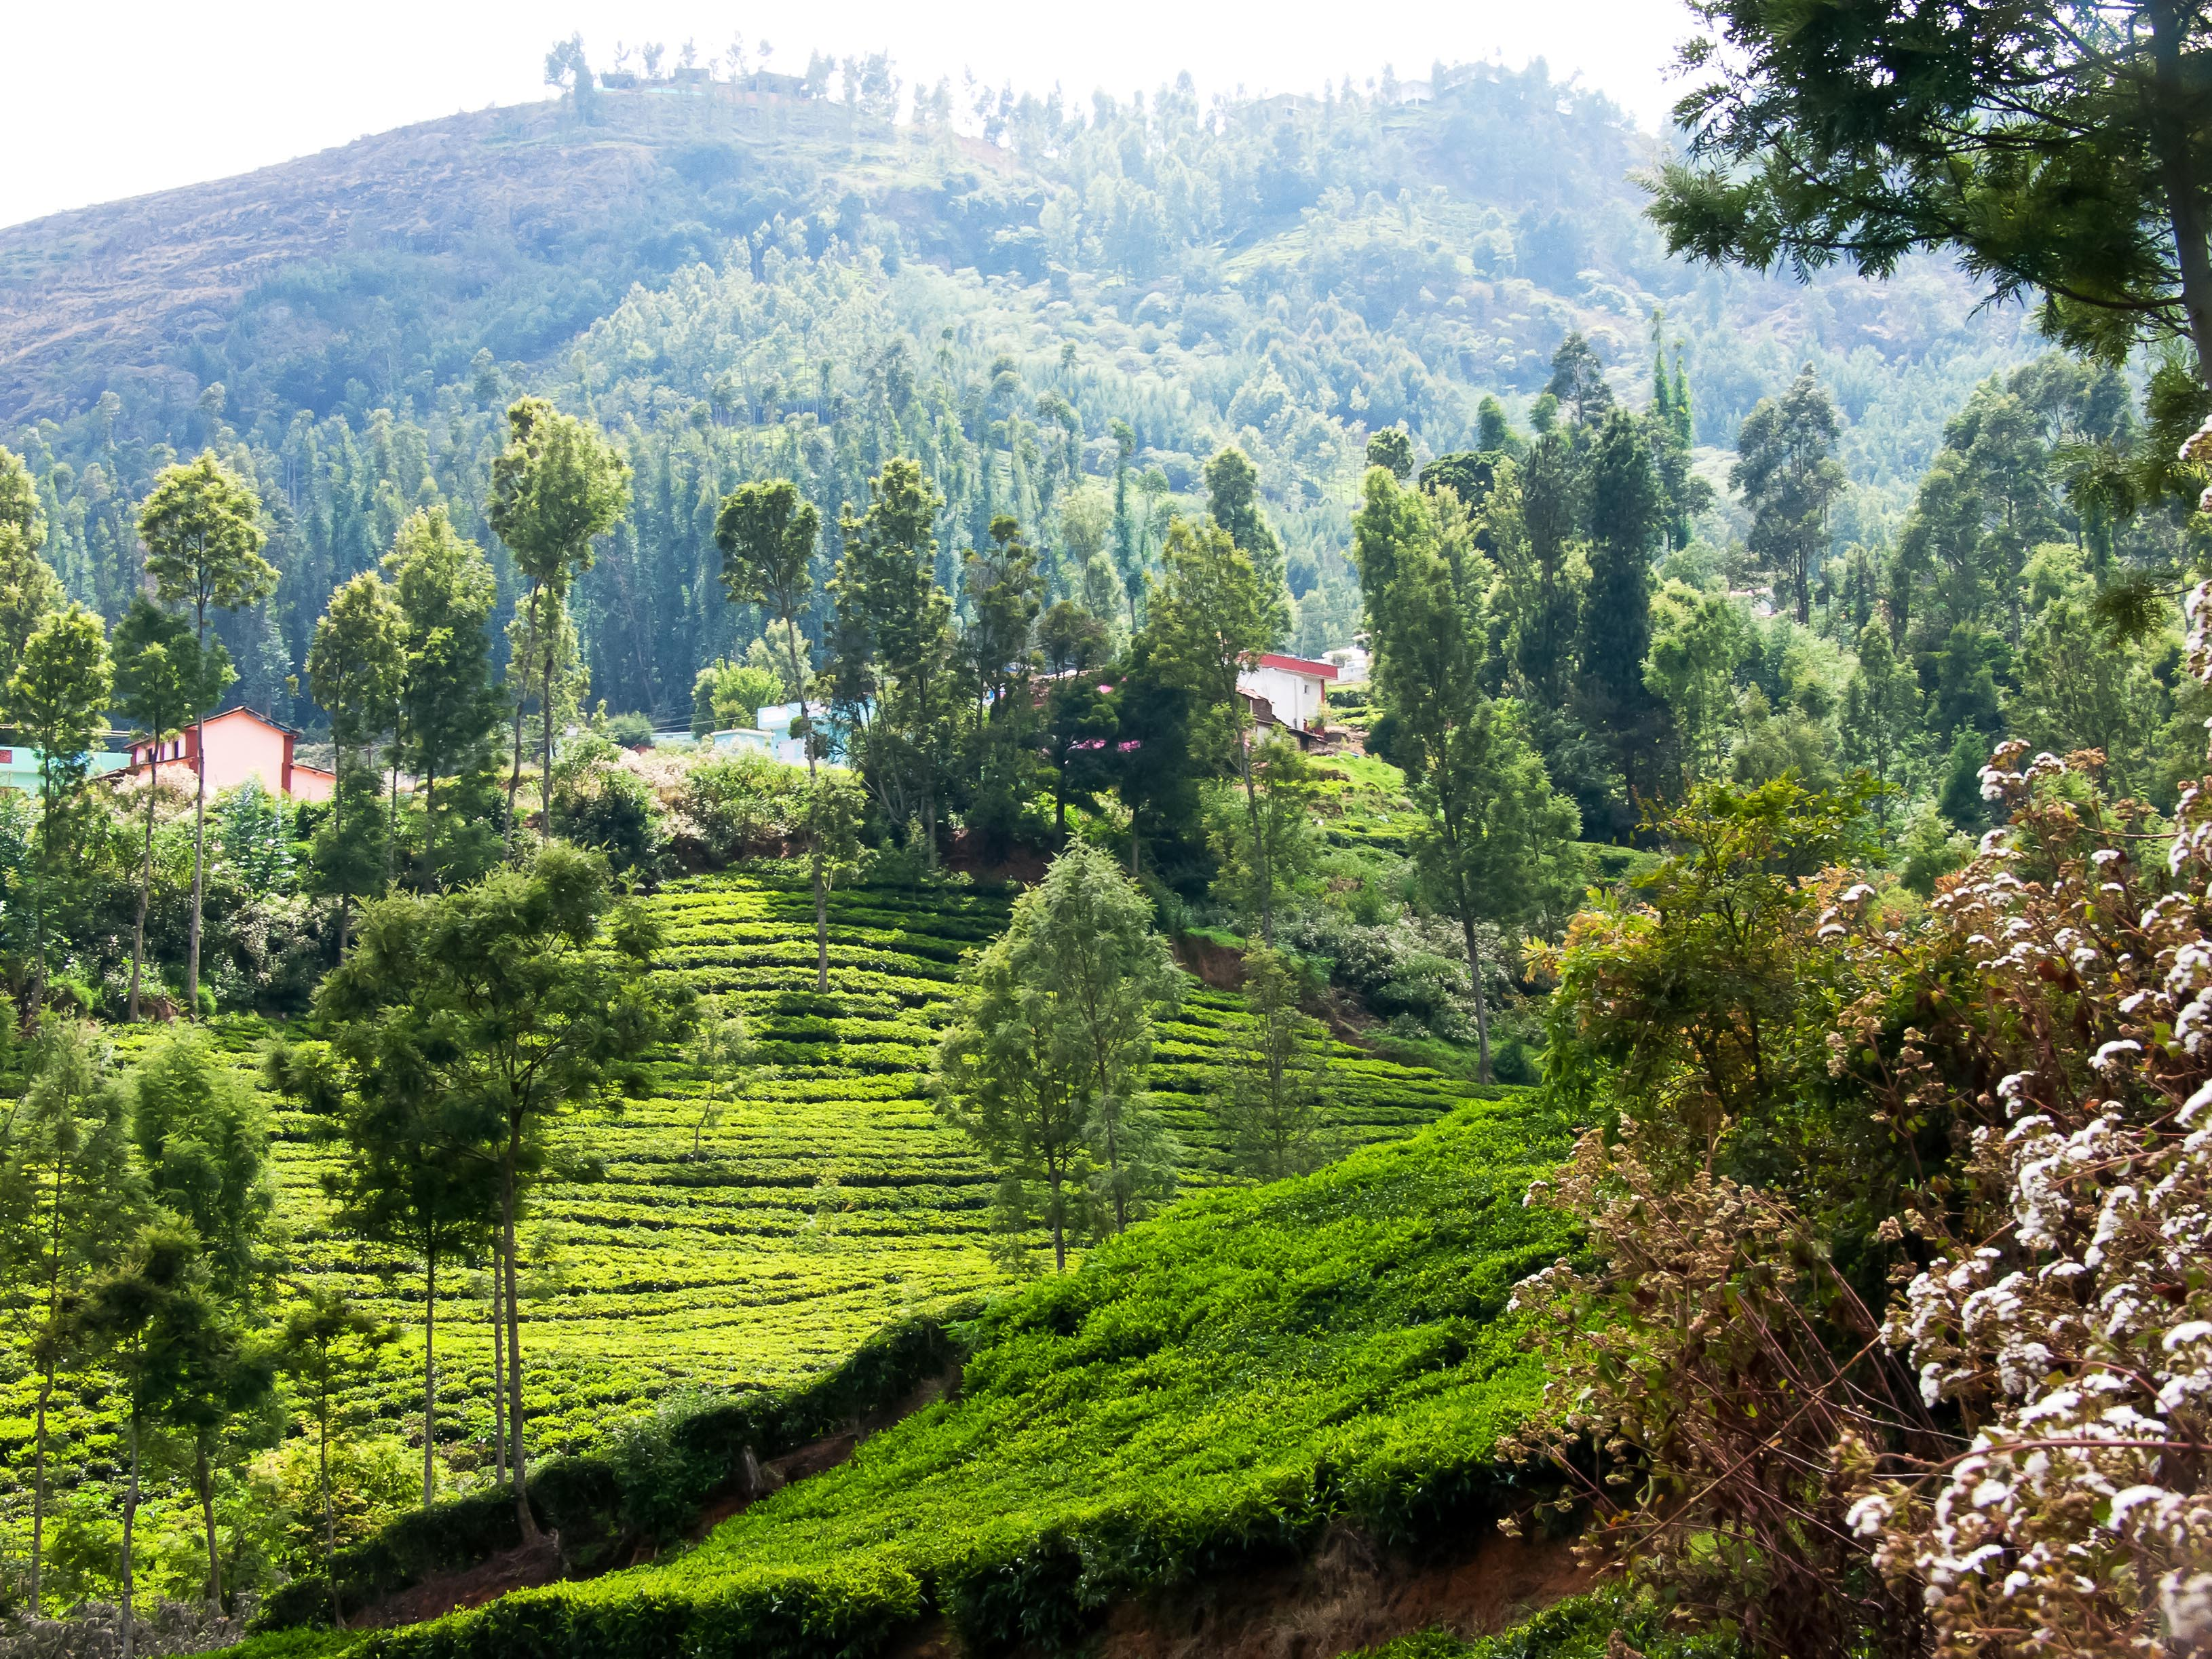 Kerada Village near Lovedale, Ooty